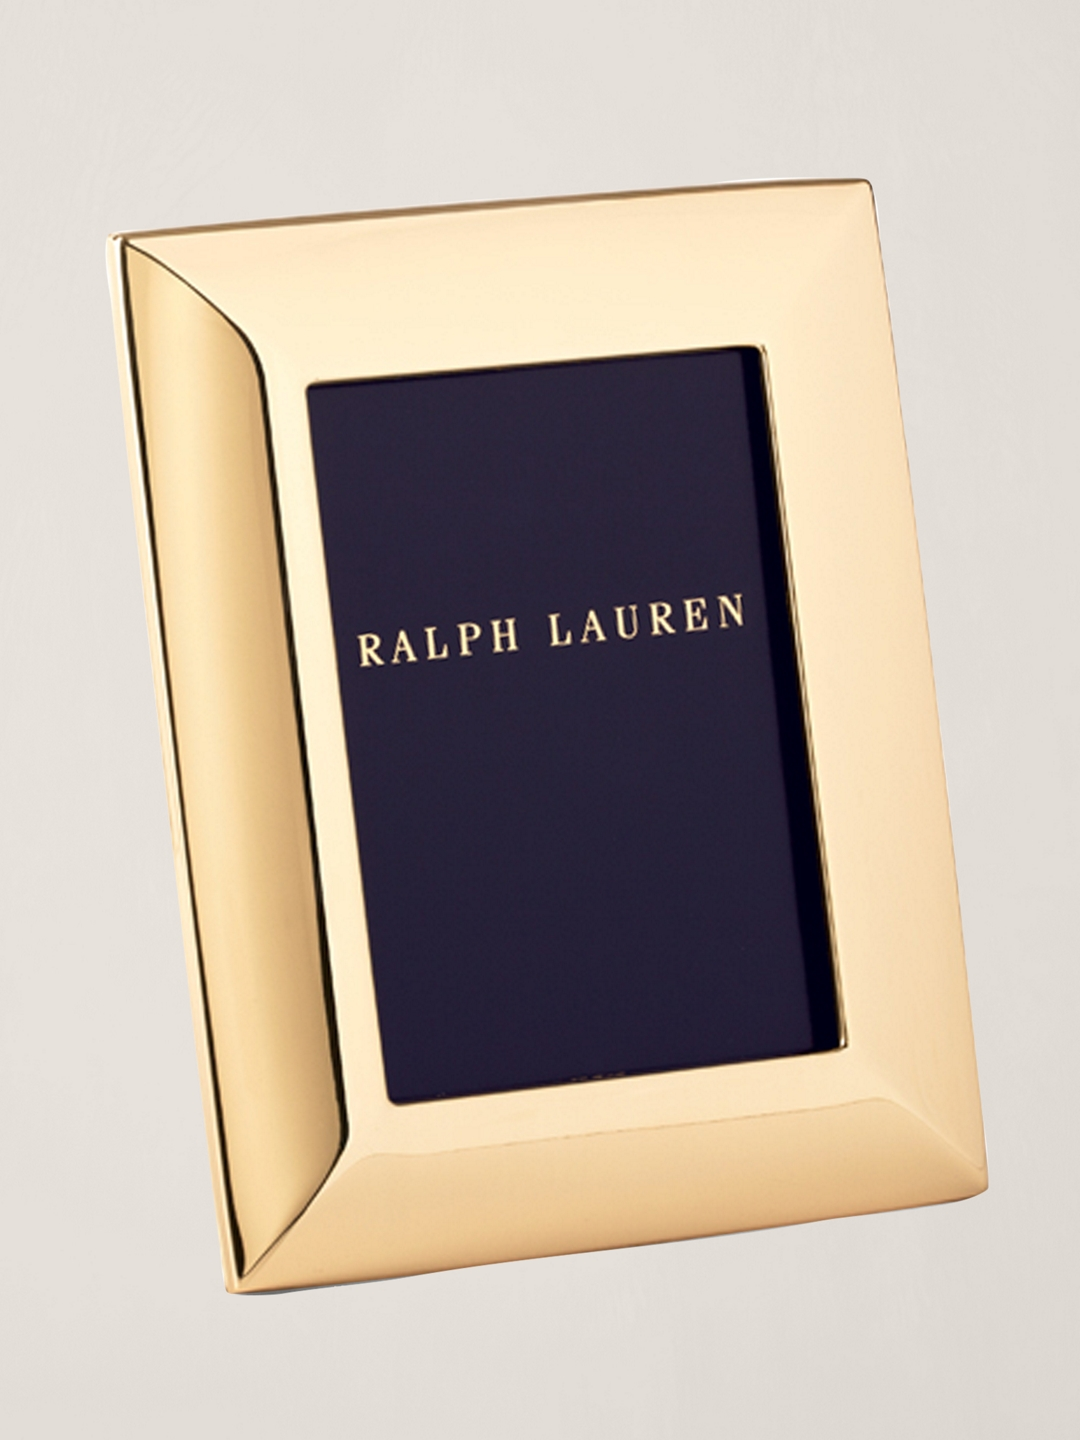 beckbury gold plated frame ralph lauren home frames desk accessories ralphlauren